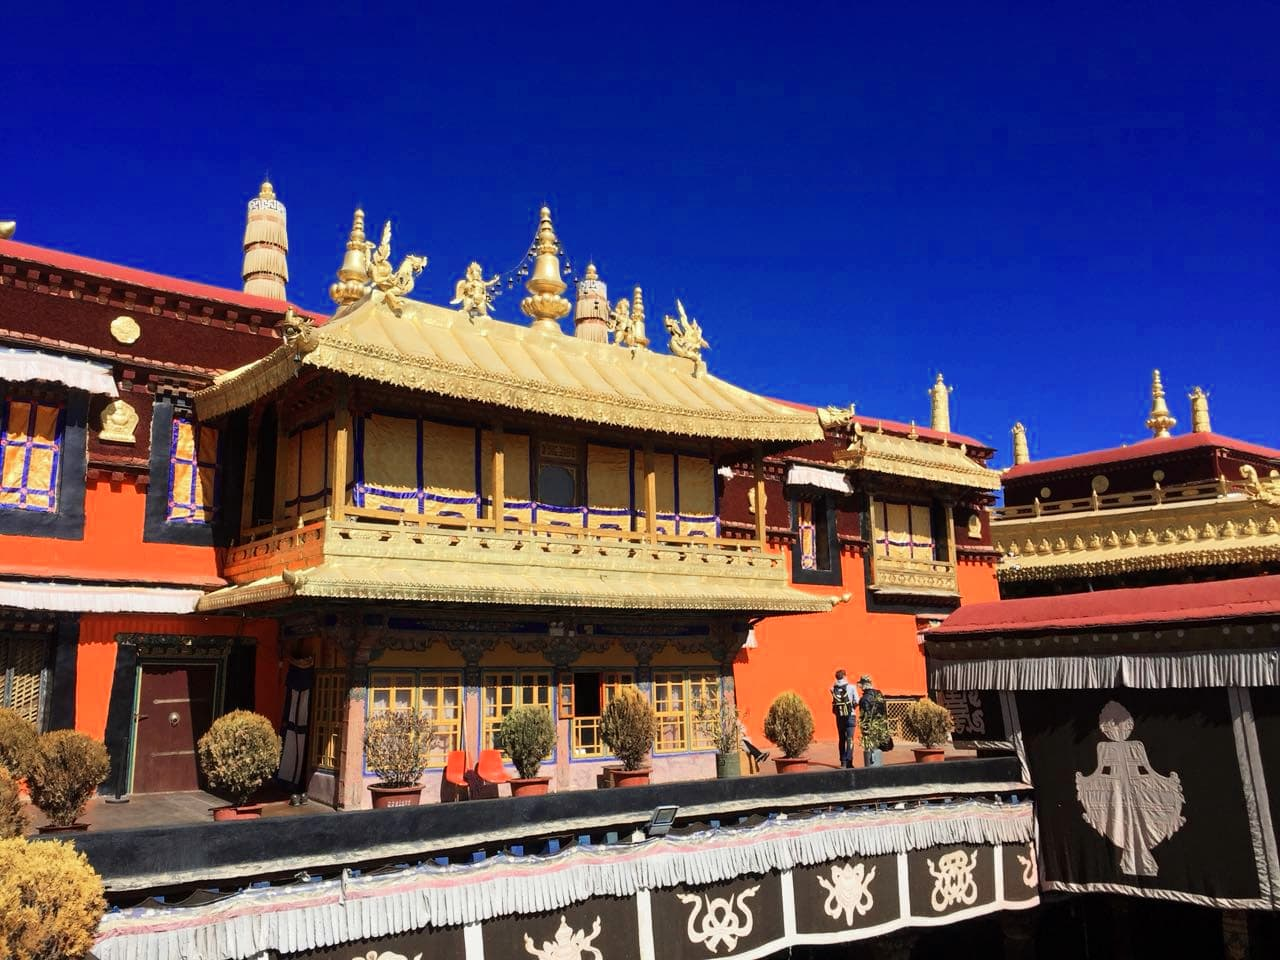 The view on the Living Quarters of the Dalai Lama in the Jokhang Temple